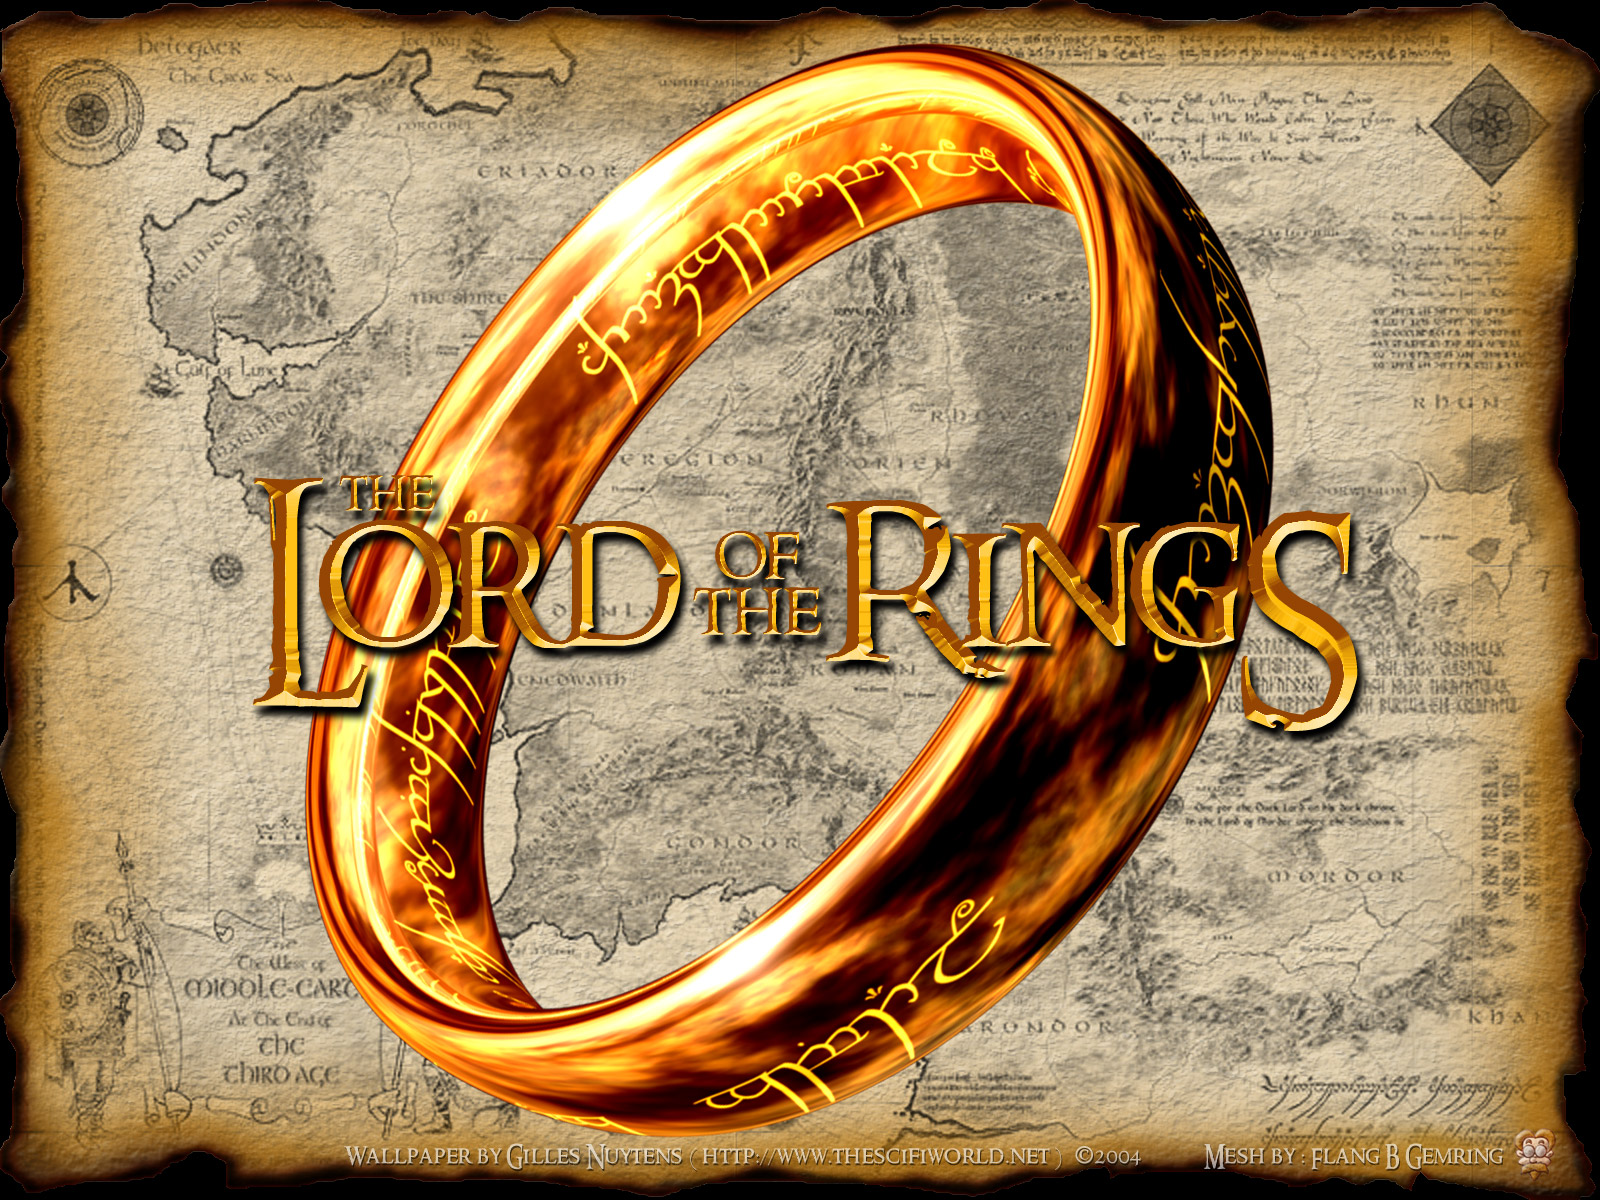 Wallpapers Lord of the rings Wallpapers 1600x1200